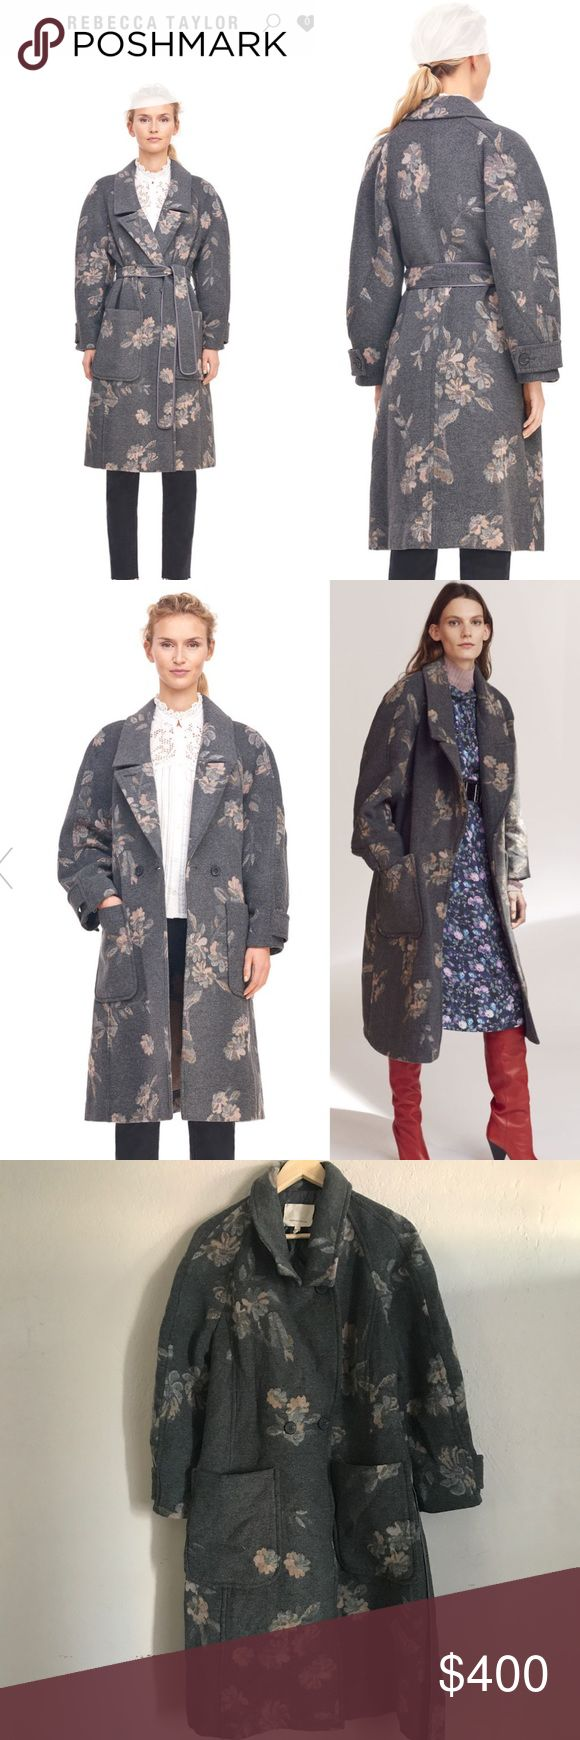 """FLORAL JACQUARD BELTED COAT Worn a handful of times. Unfortunately these coat got somewhat wet and it damage a little, thankfully it did not shrink and honestly I don't see much of a difference since when I first purchase it. These is an oversized coat. See measurements. Length is about 40"""" armpit to armpit 19"""" and Sleeves are approximately 14"""". It has never been washed nor been in a dryer only dry clean. Originally $895 is on sale now for $537 color is gray. This coat is gorgeous 😍 price…"""